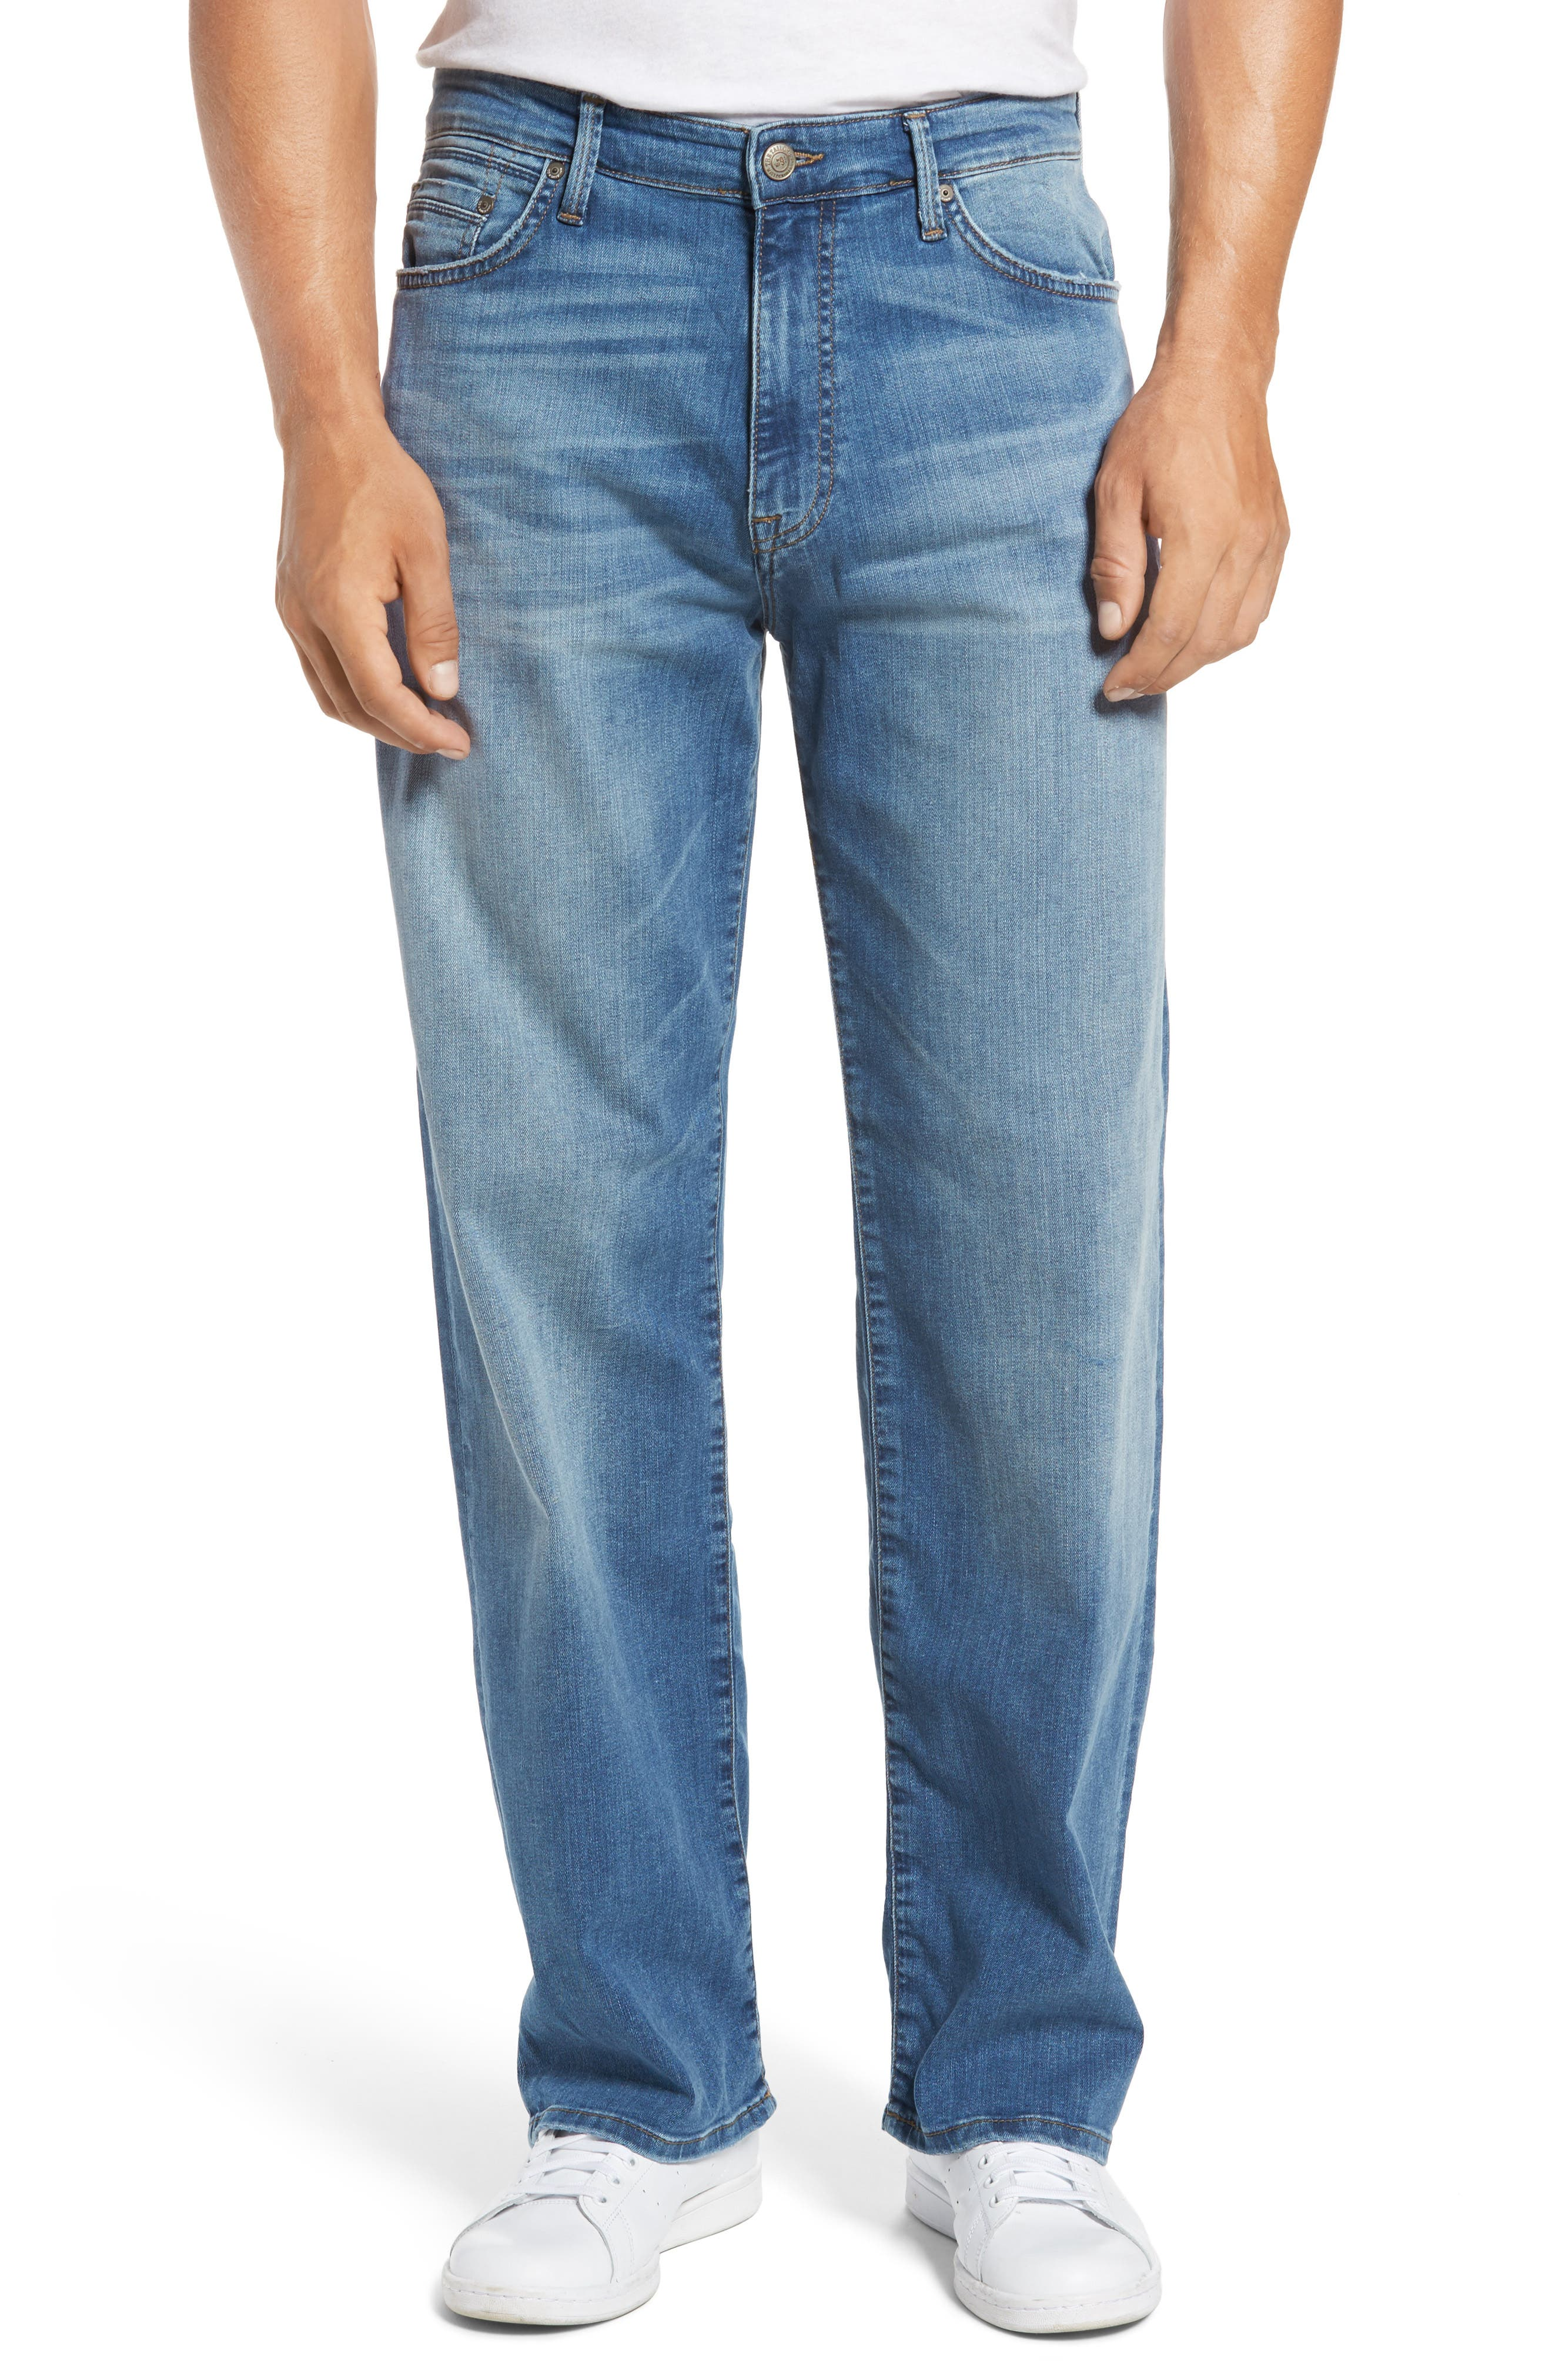 Max Relaxed Fit Jeans,                         Main,                         color, 401